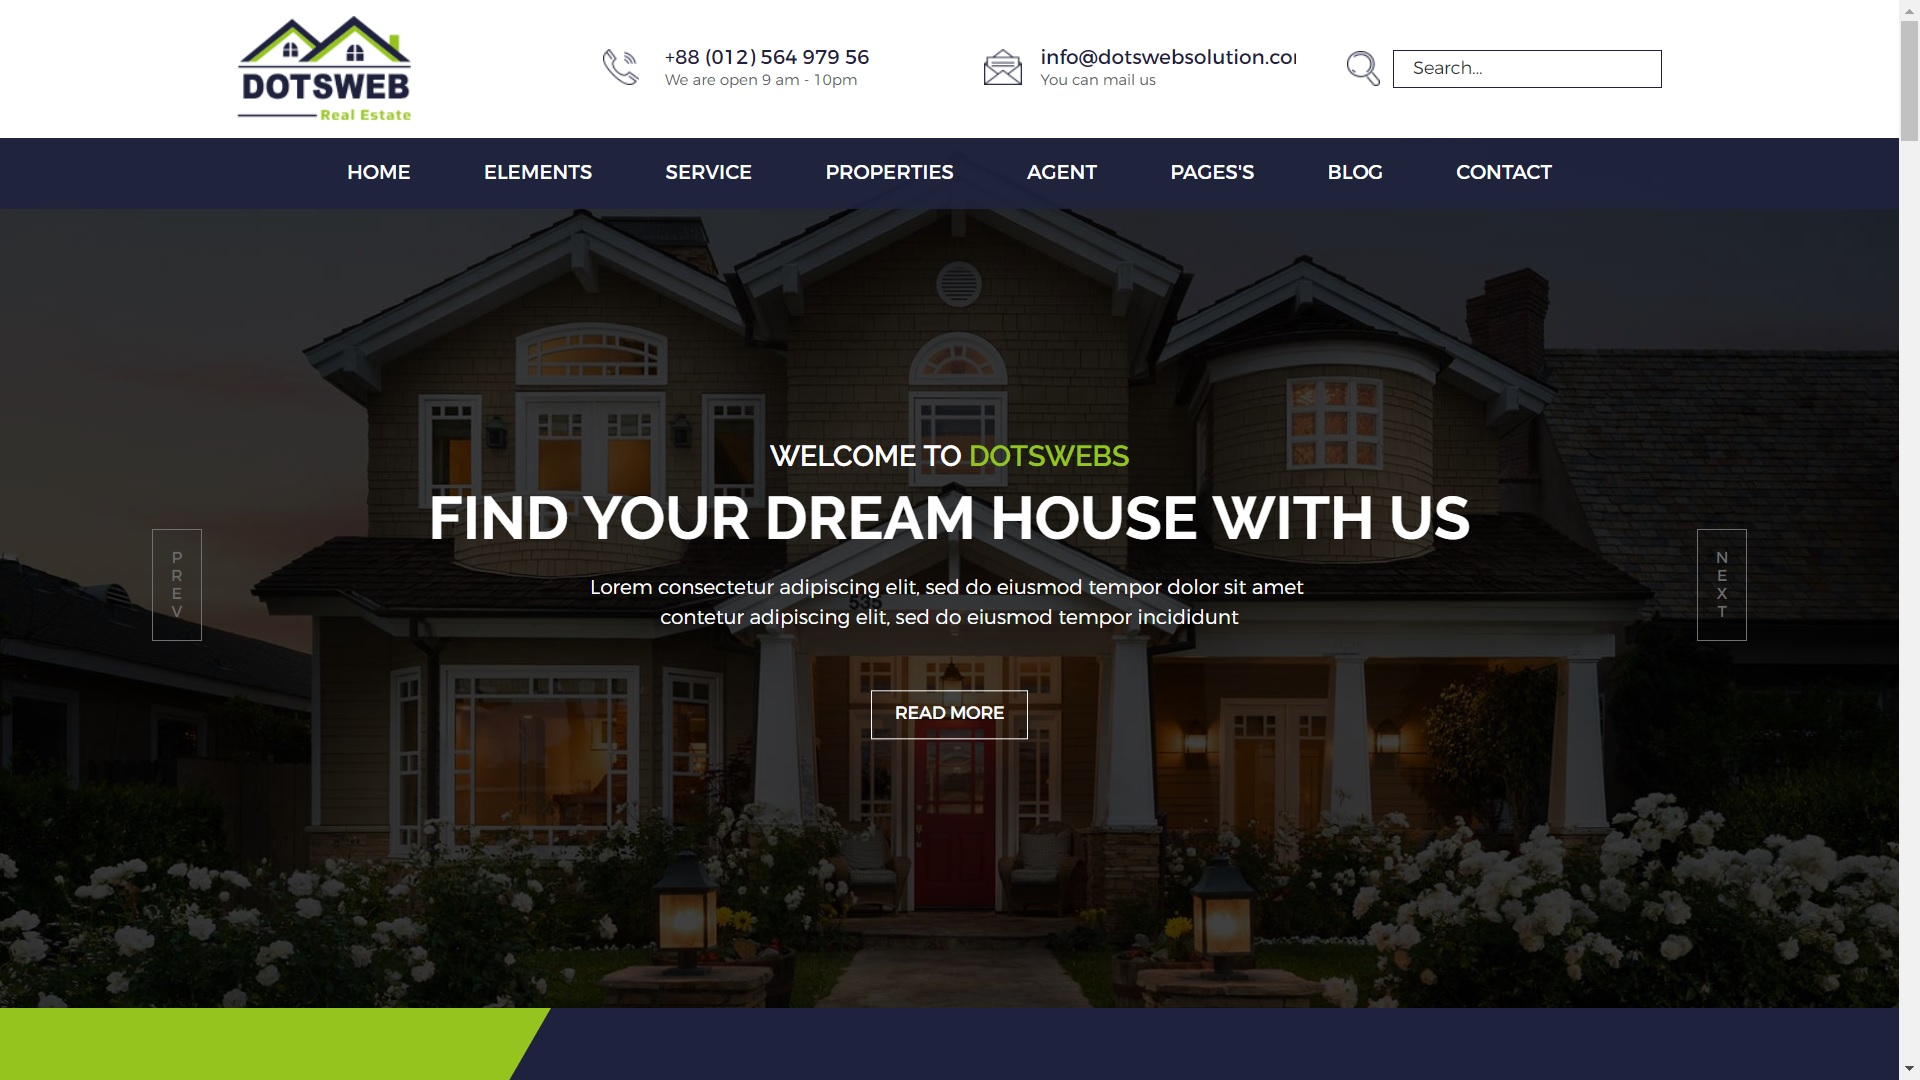 Real Estate1 Dots Websolution